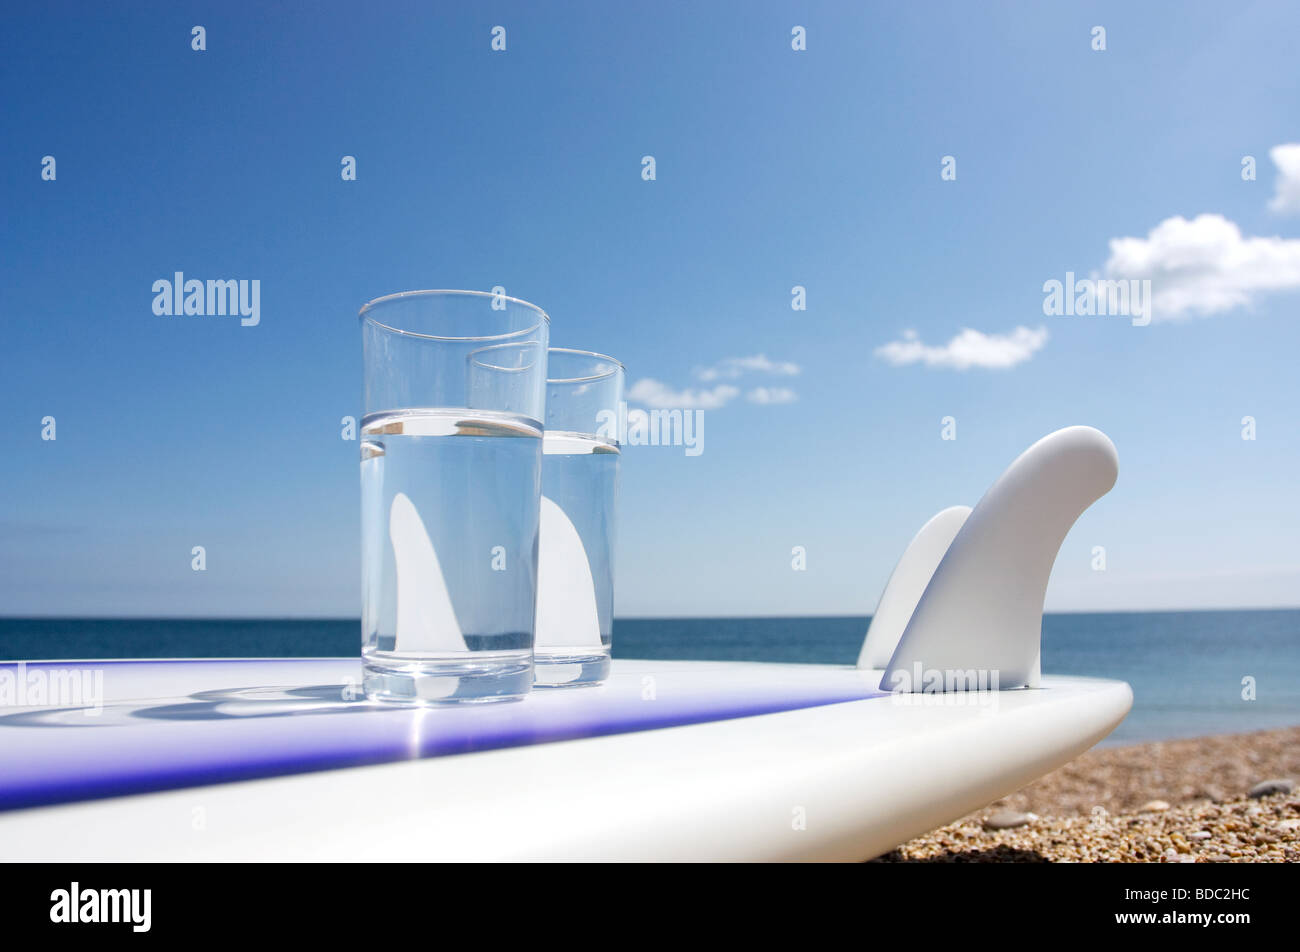 Surfboard on beach with two glasses of water Stock Photo